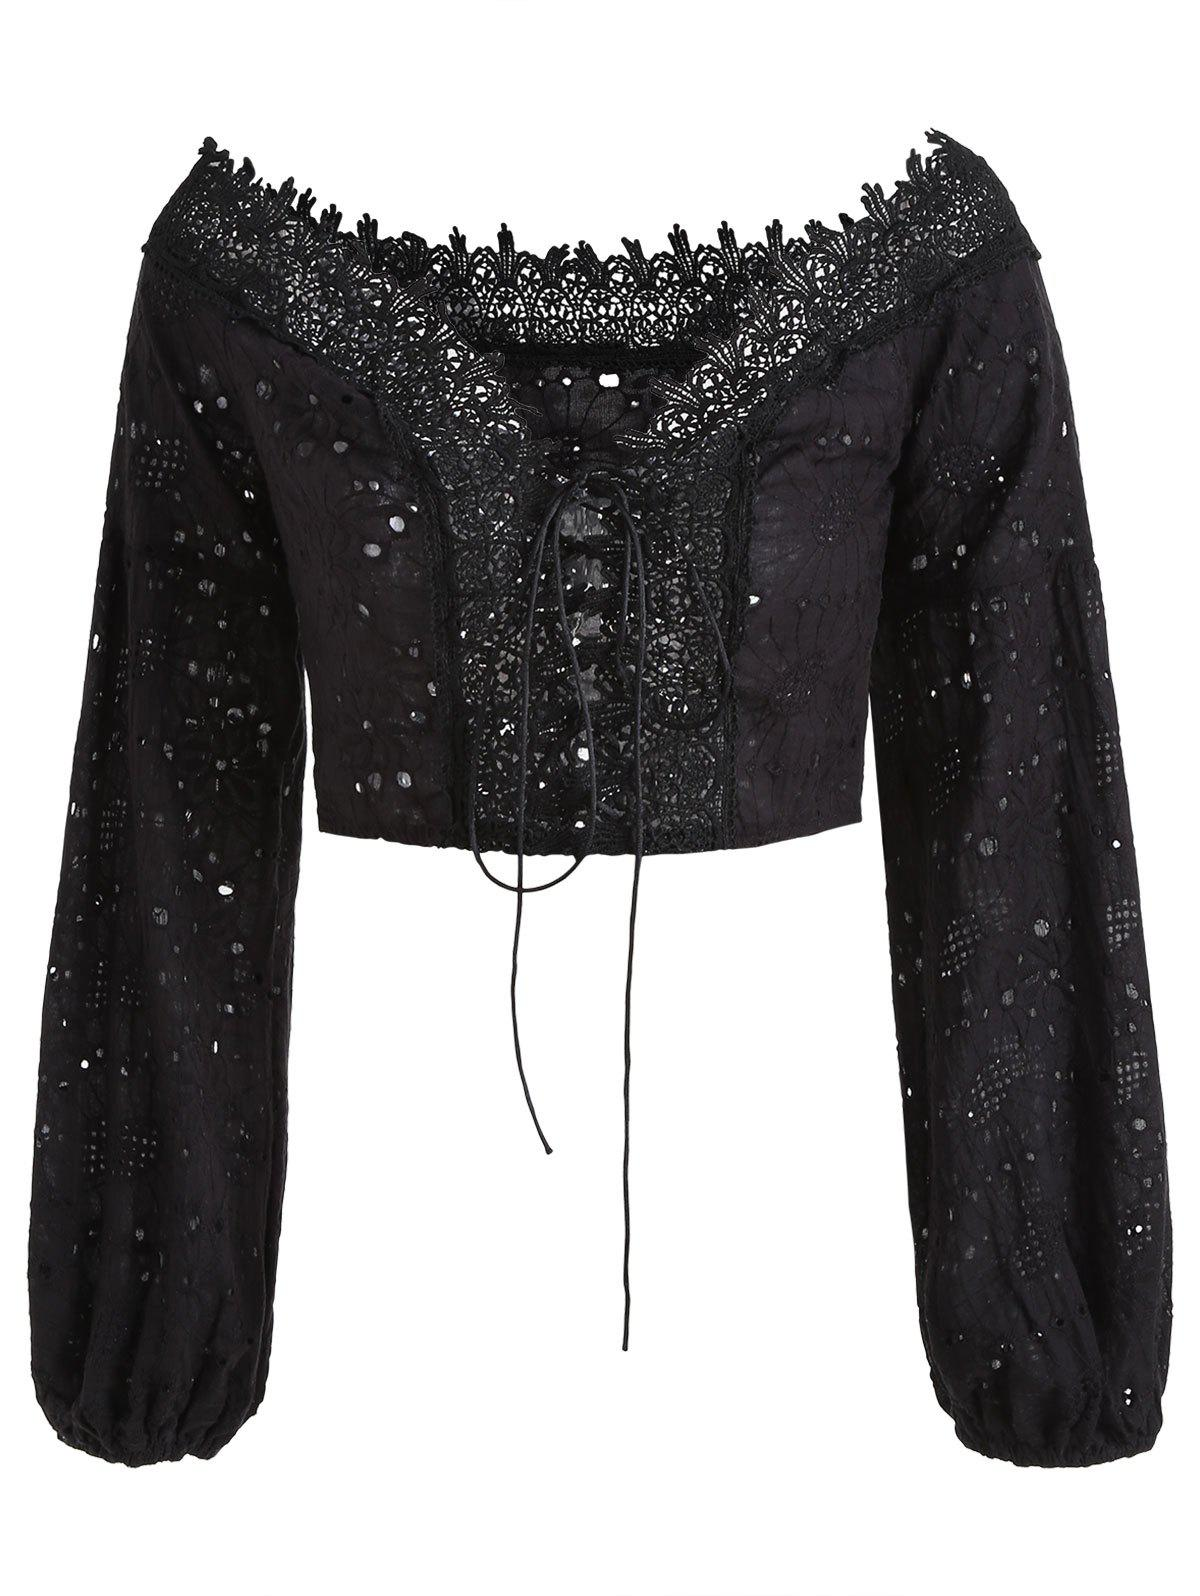 Eyelet Lace-up Off The Shoulder Top - BLACK M